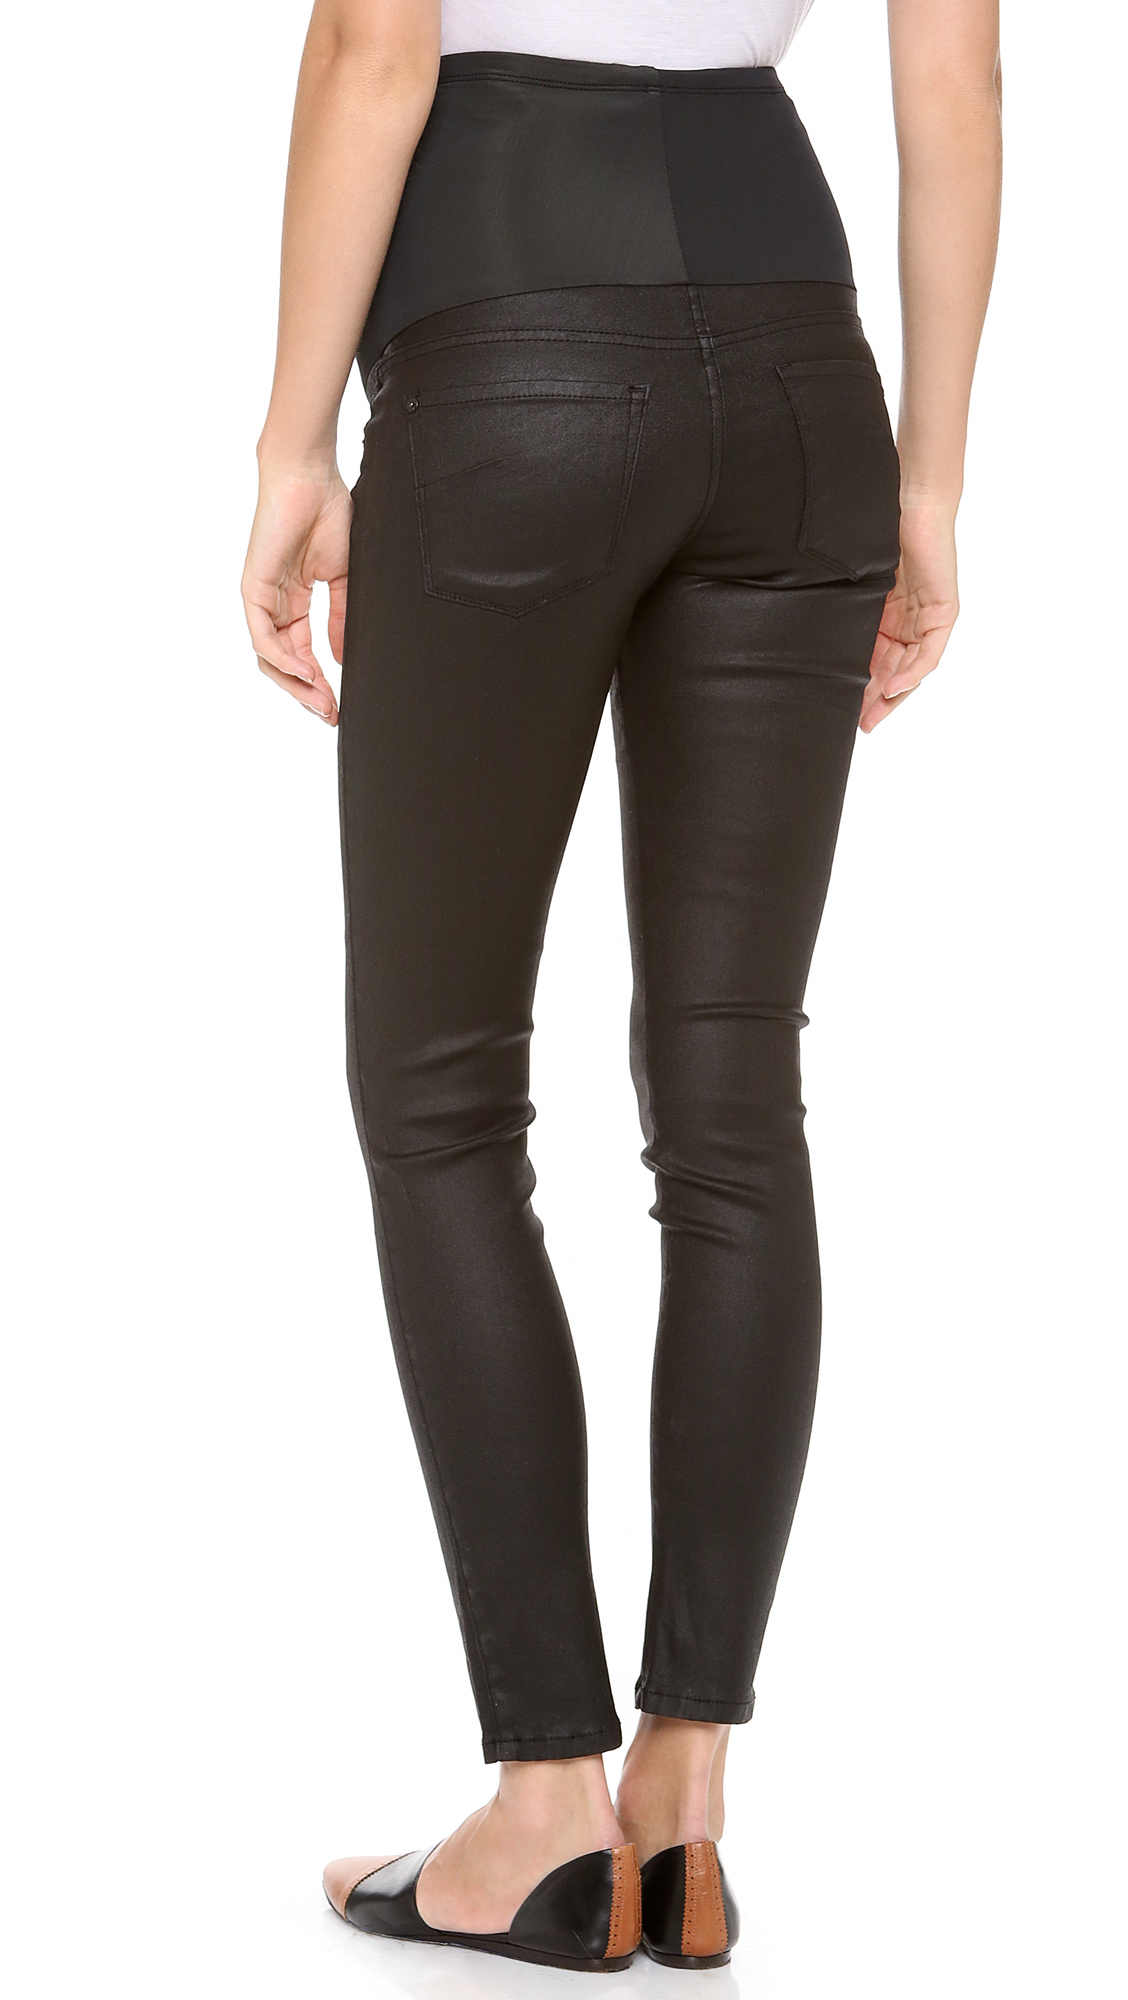 AG Jeans Maternity Skinny Jeans $ Sale $ Free ship at $ Enjoy Free Shipping at $49! See exclusions. Free ship at $ more like this. Motherhood Maternity Dark Wash Skinny Jeans Limited-Time Special.